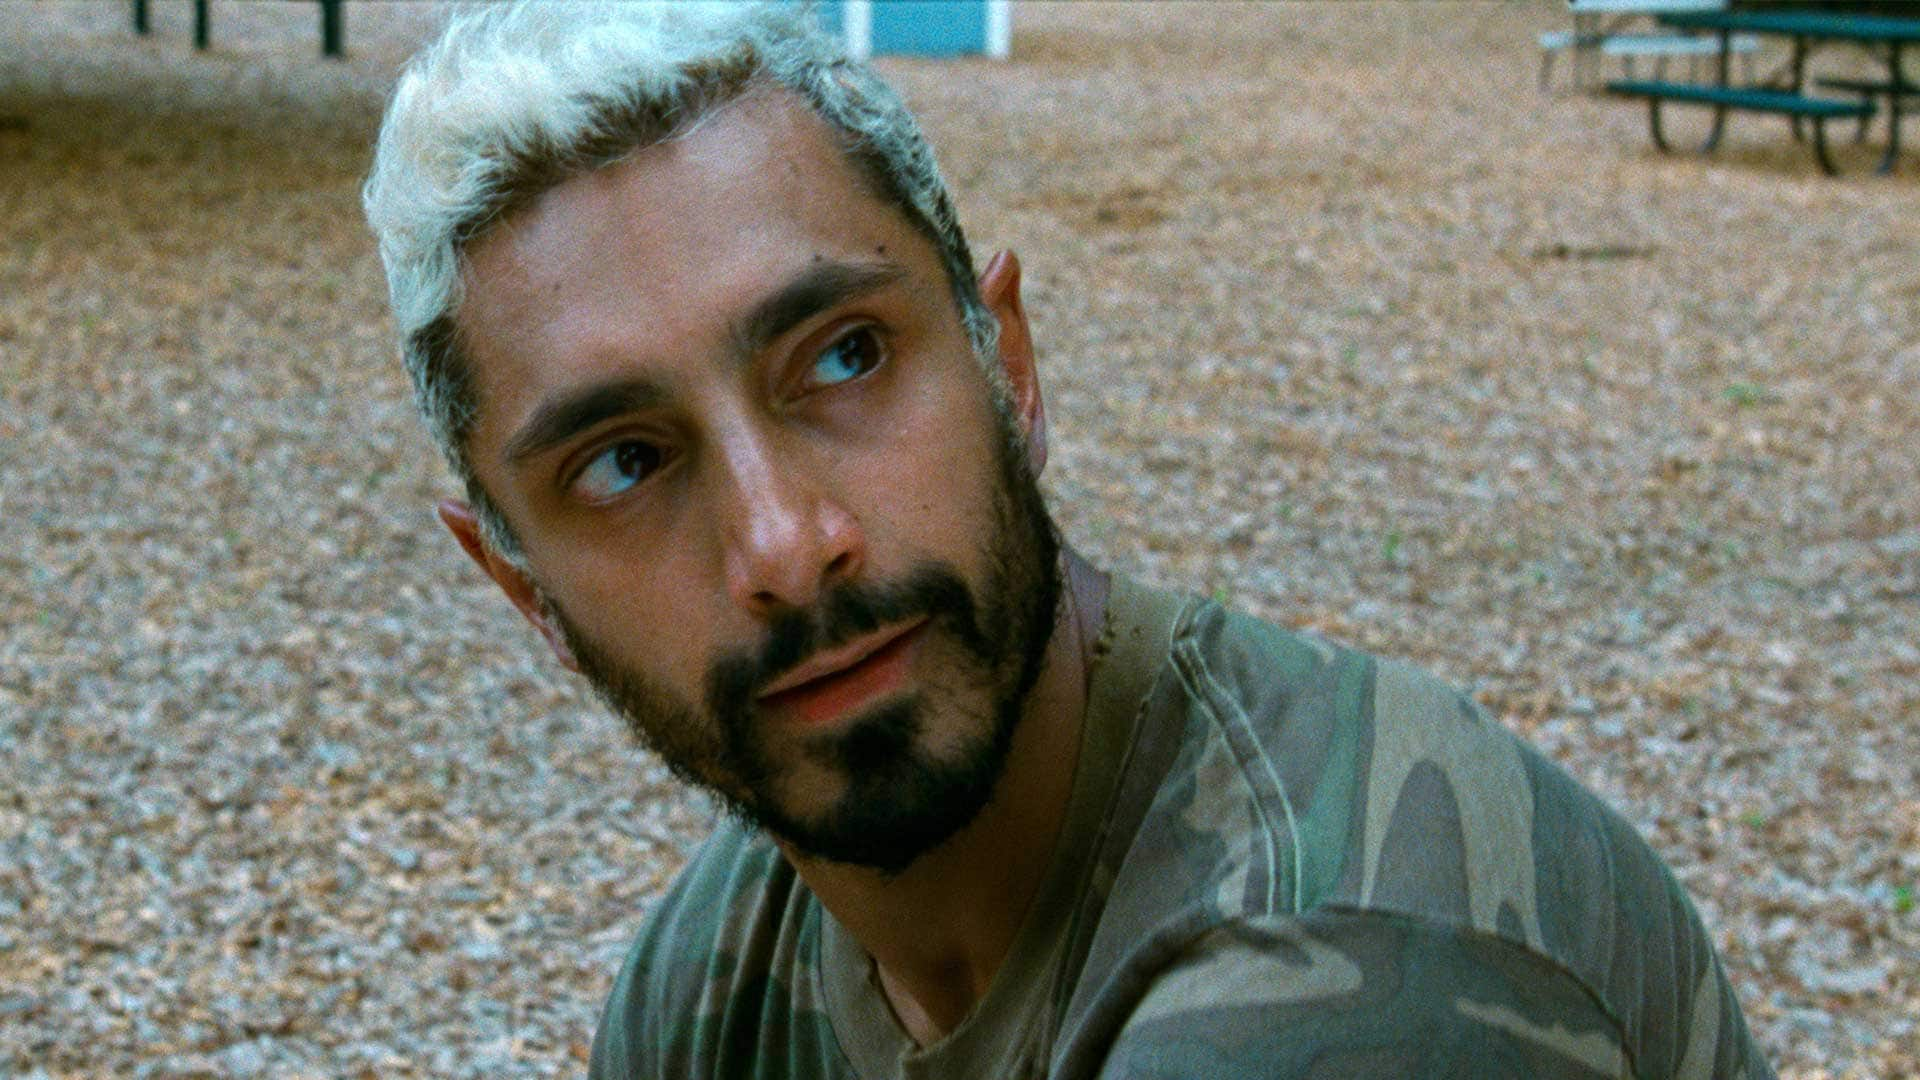 Deaf community members Visit Riz Ahmed's role in Sound of Metal as Hollywood Landmark thumbnail